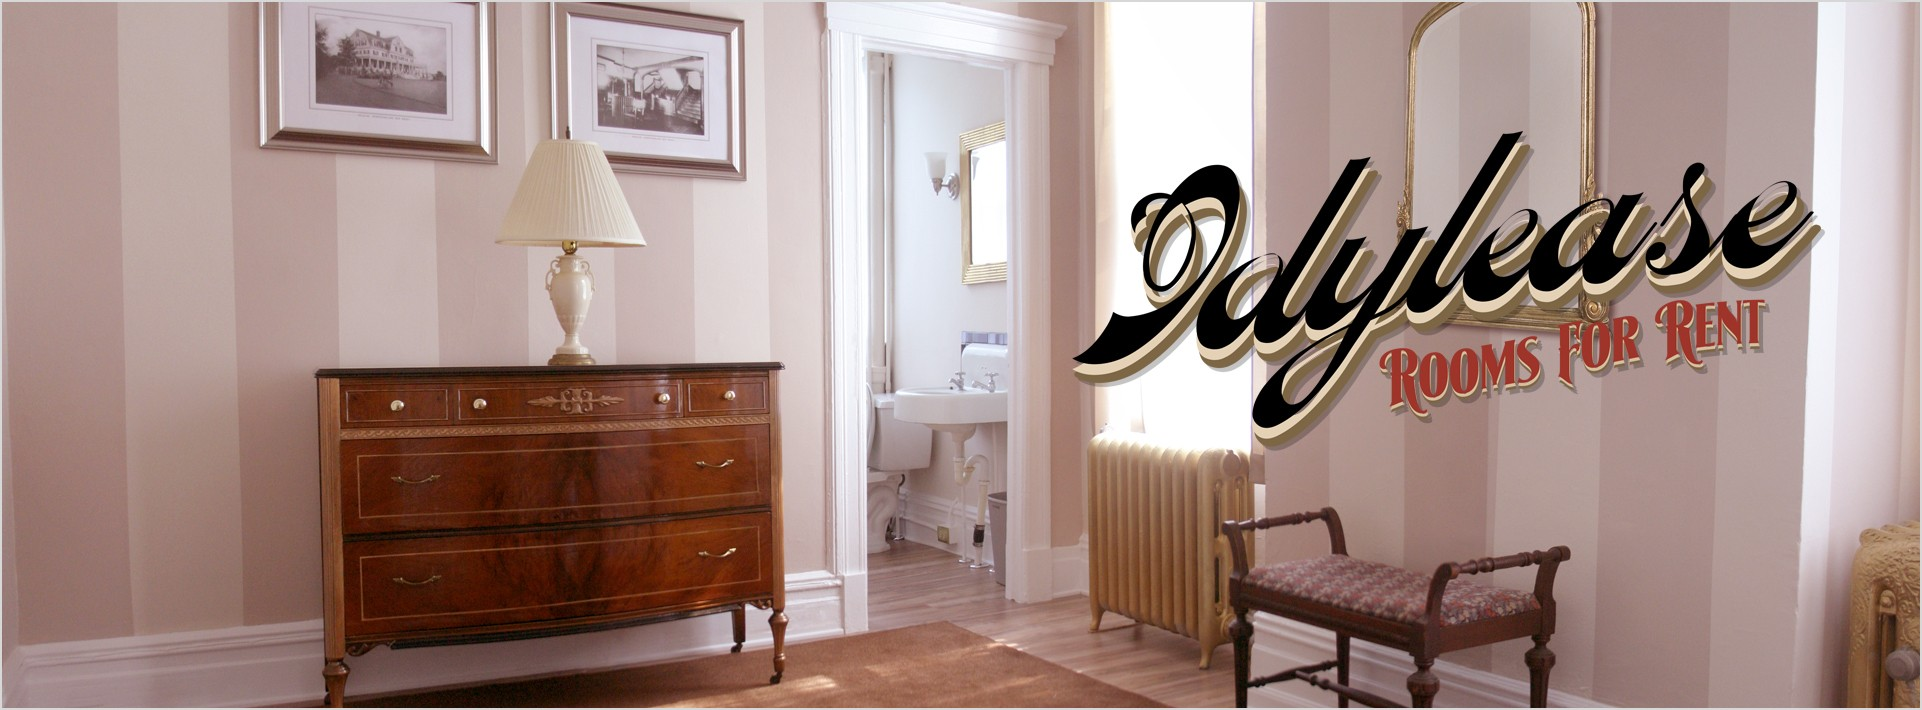 idylease-rooms-for-rent